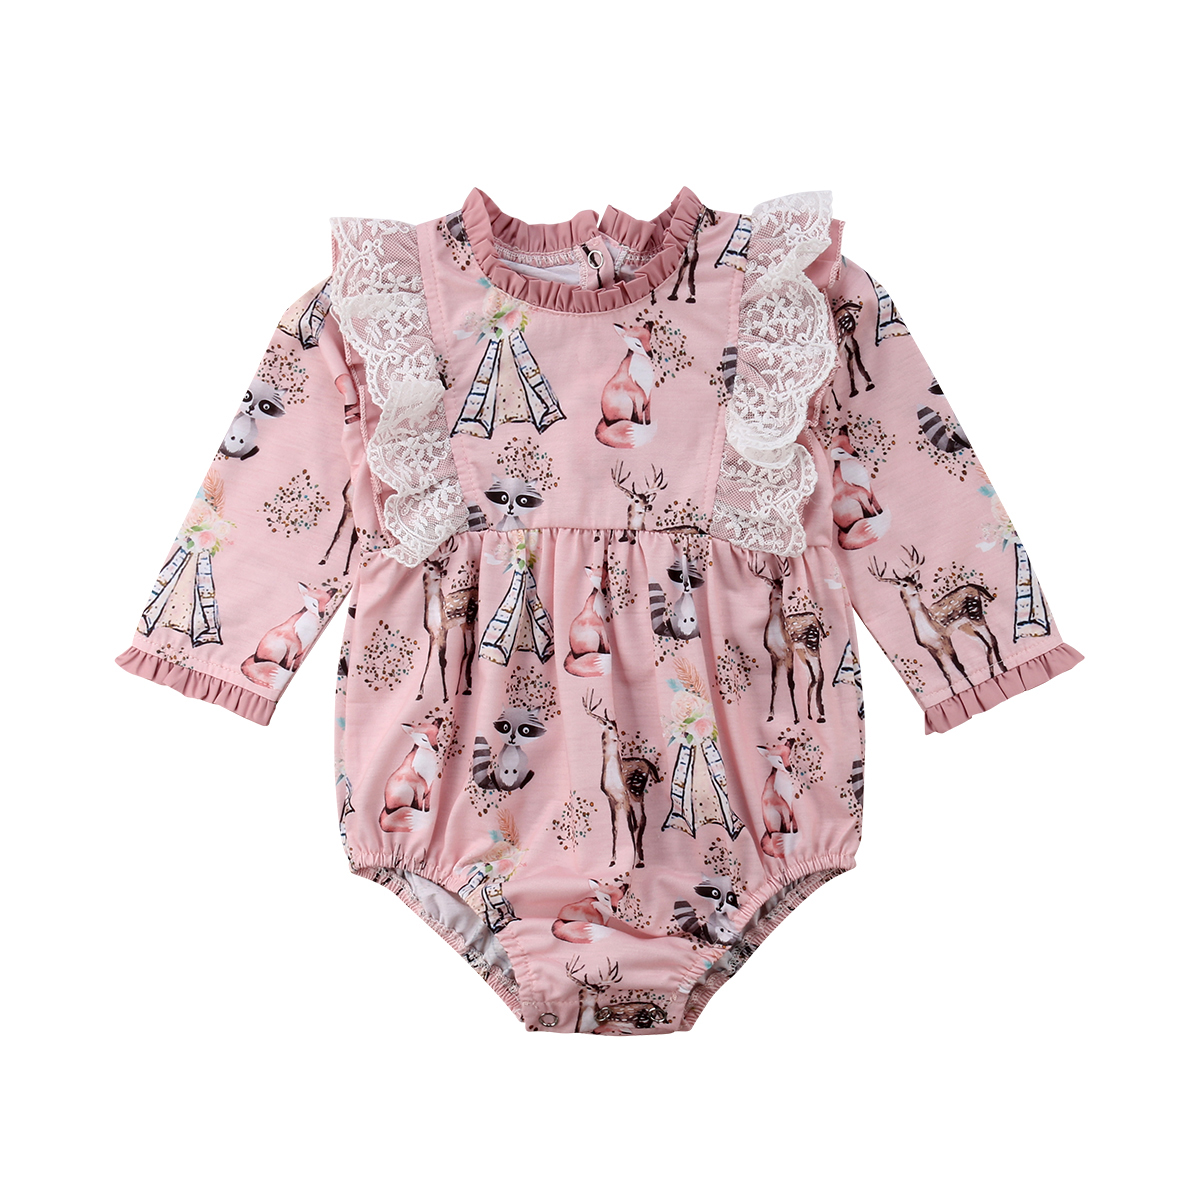 Newborn Baby Girls Long Sleeve Romper Jumpsuit Floral Clothes Outfits poudcoco 2018 Autumn style Baby kids Girl romper